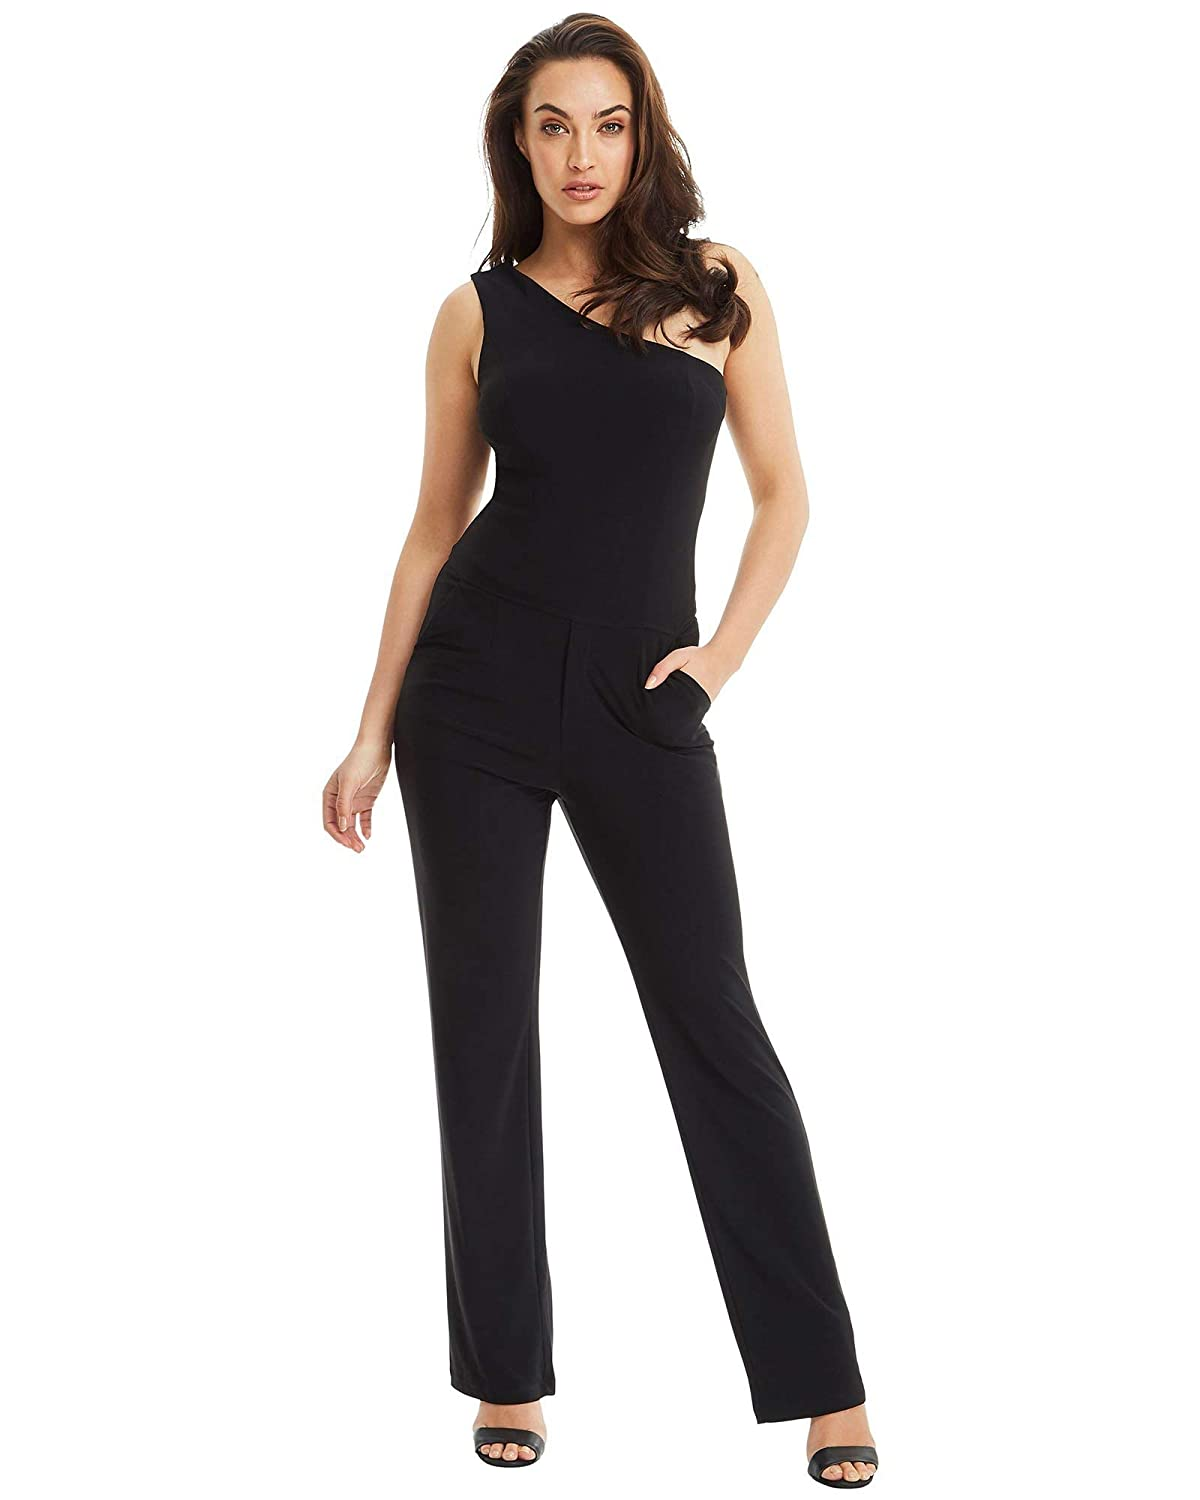 45a6b89122a3 Amazon.com  Skiva One Shoulder Pantsuit - Black  Clothing